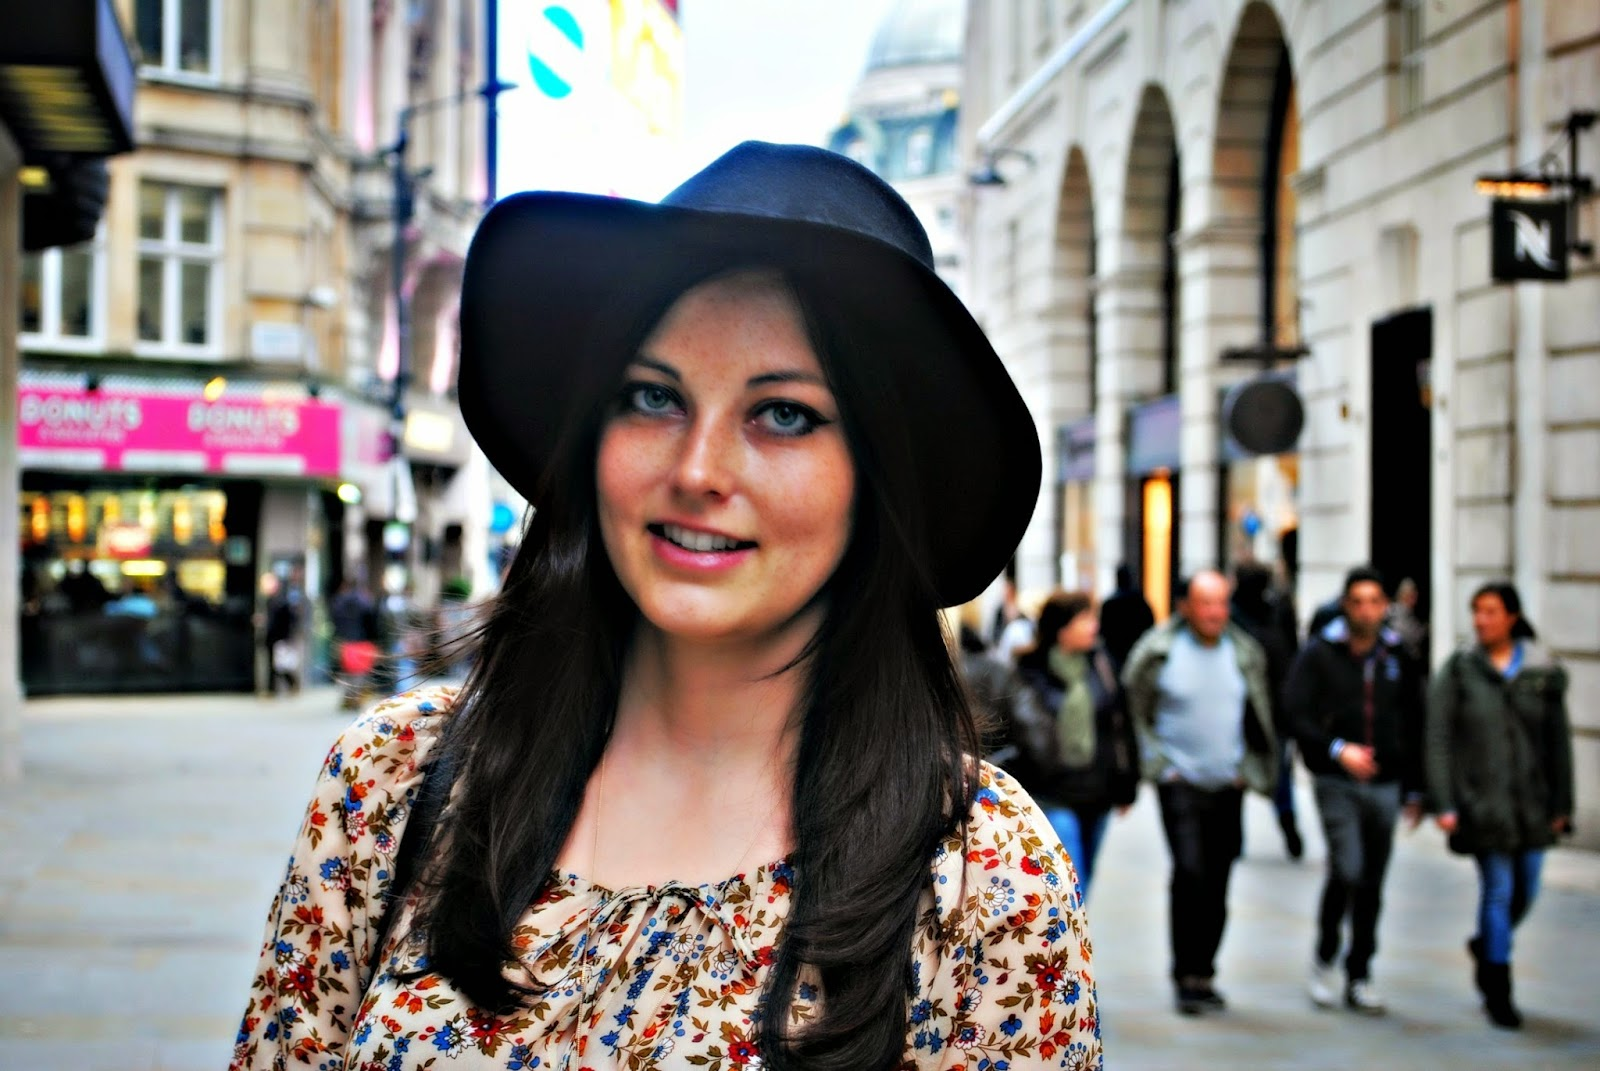 Stradivarius boho vintage blouse London fashion blogger ootd